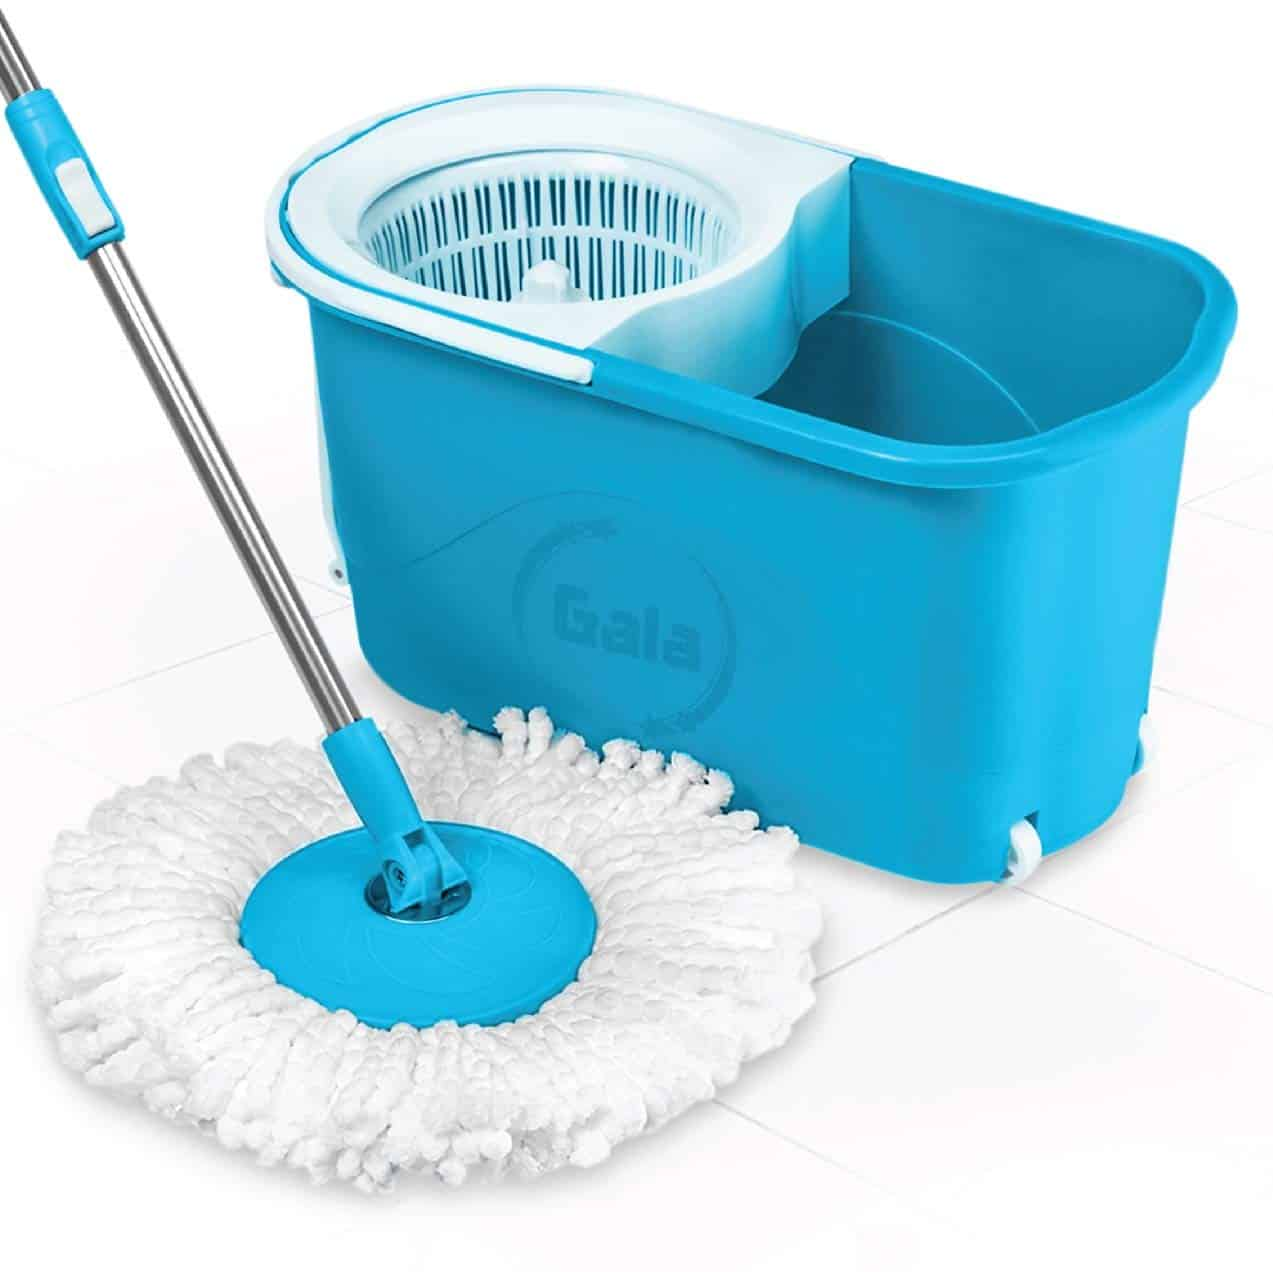 Best Gala Spin Mop in India 2021 (Very Useful Product for Deep Cleaning) UP to 40% OFF on Amazon 1